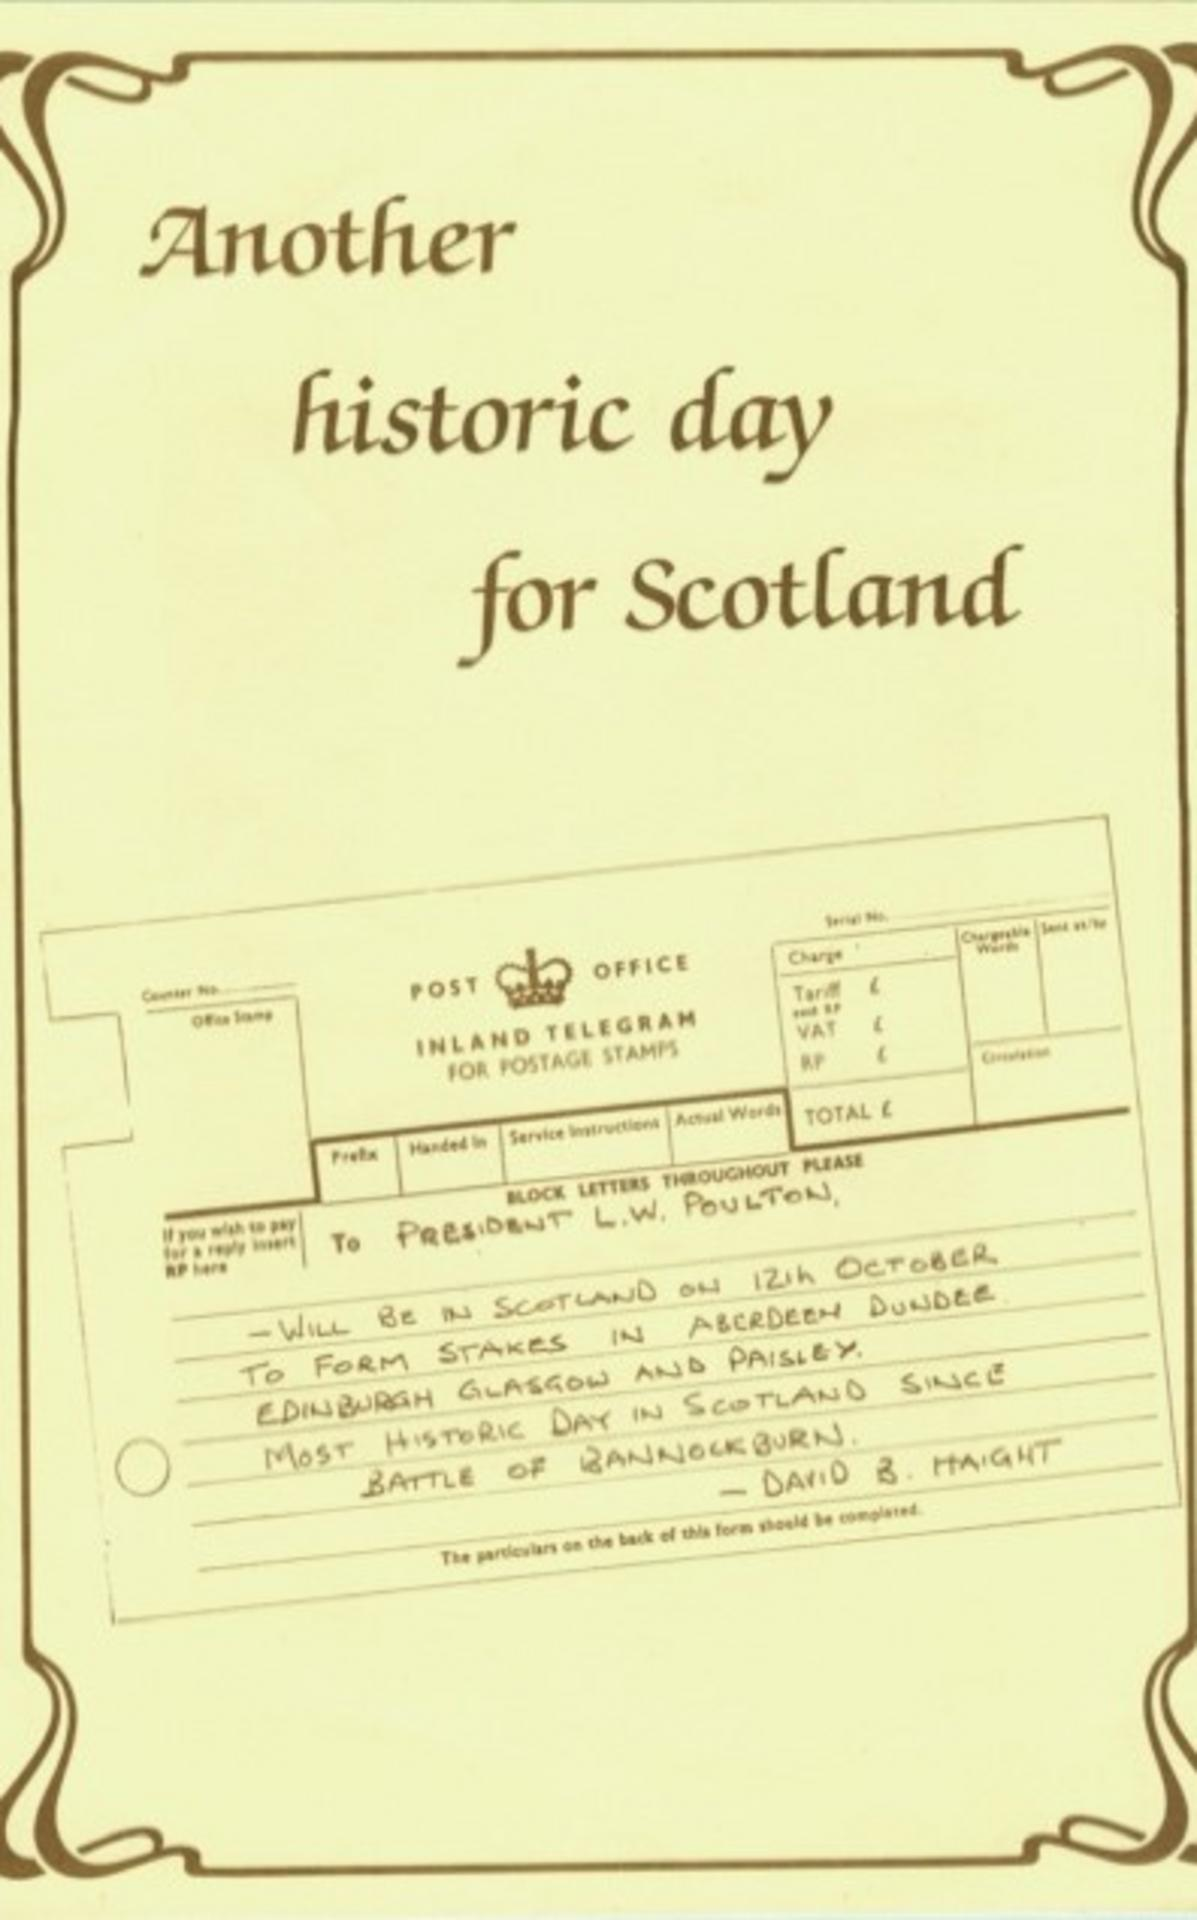 This telegram was included in the conference programme.